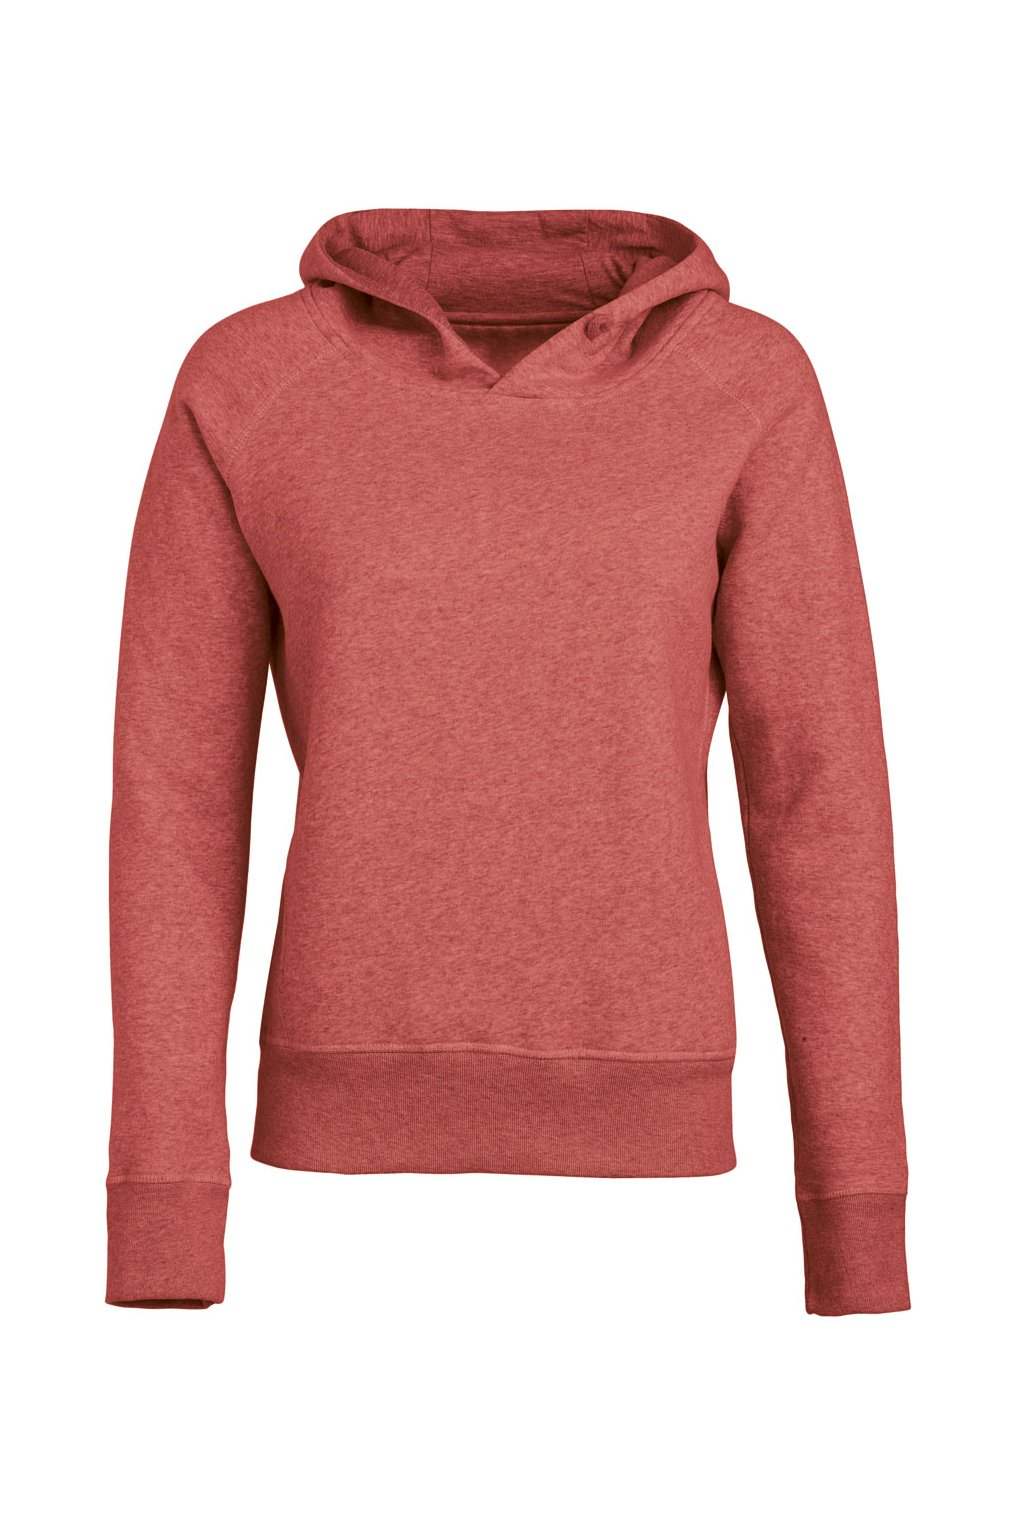 P W137 ST Says front Mid Heather red